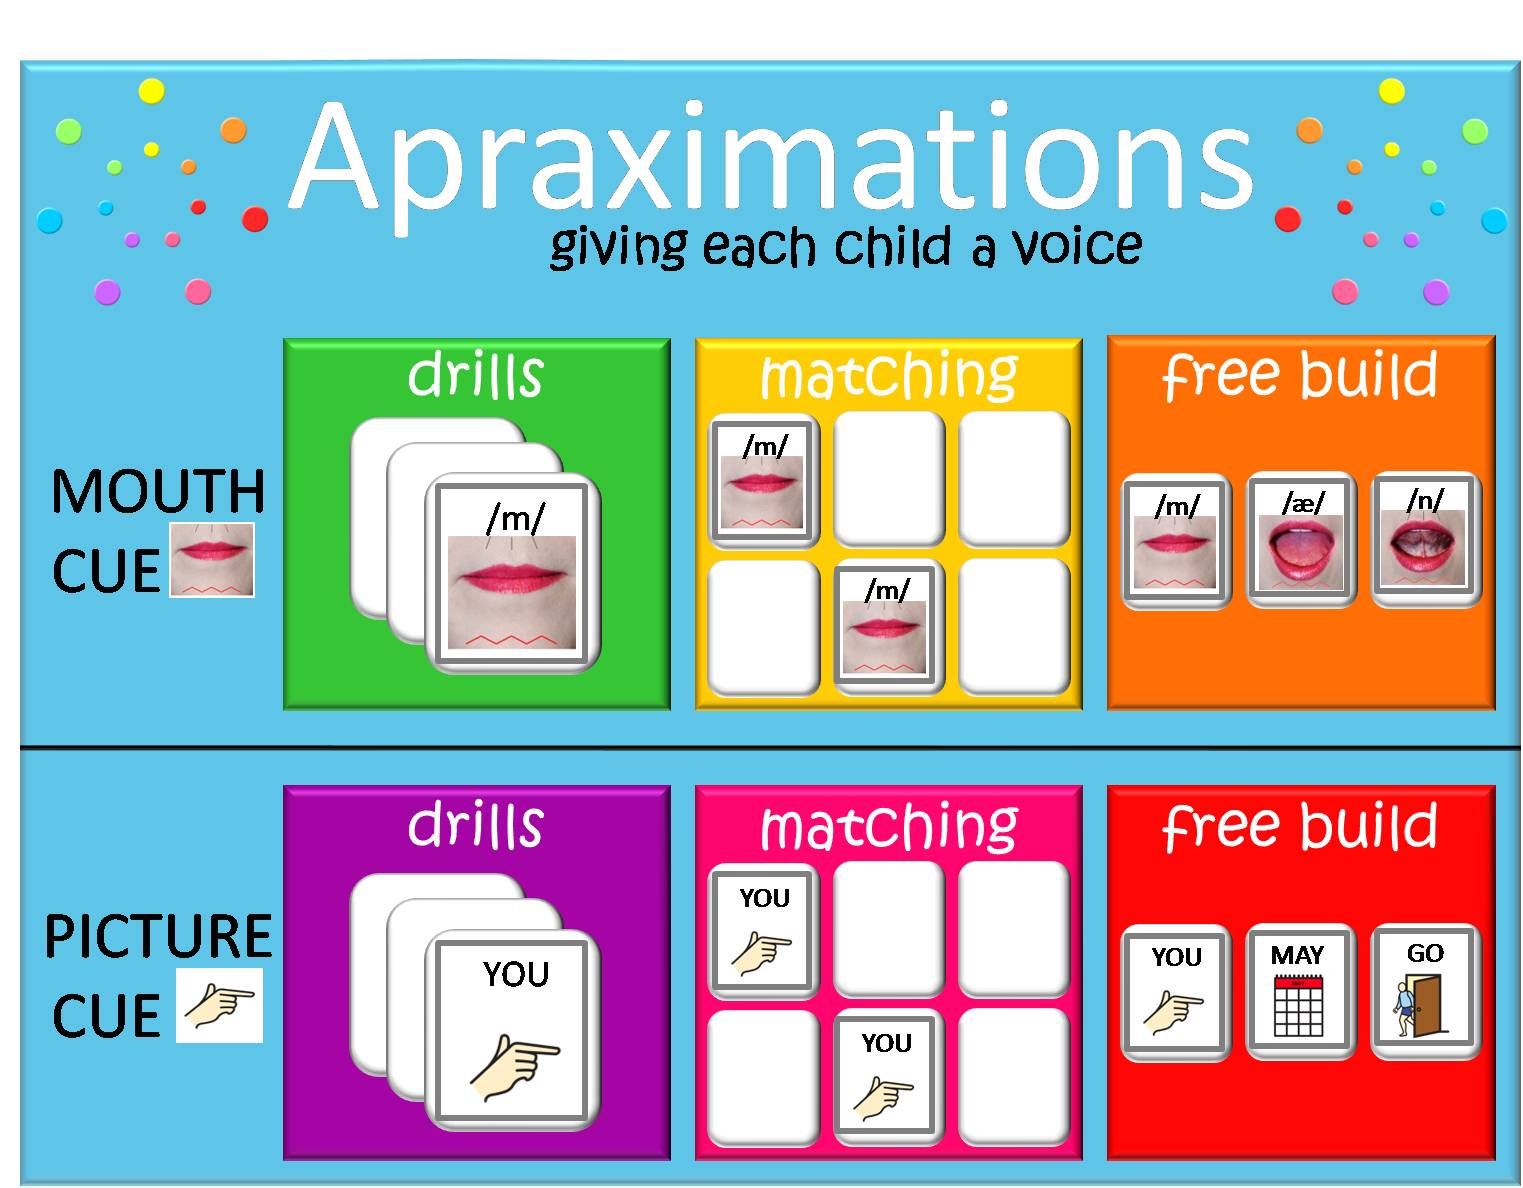 Apraximations-pic